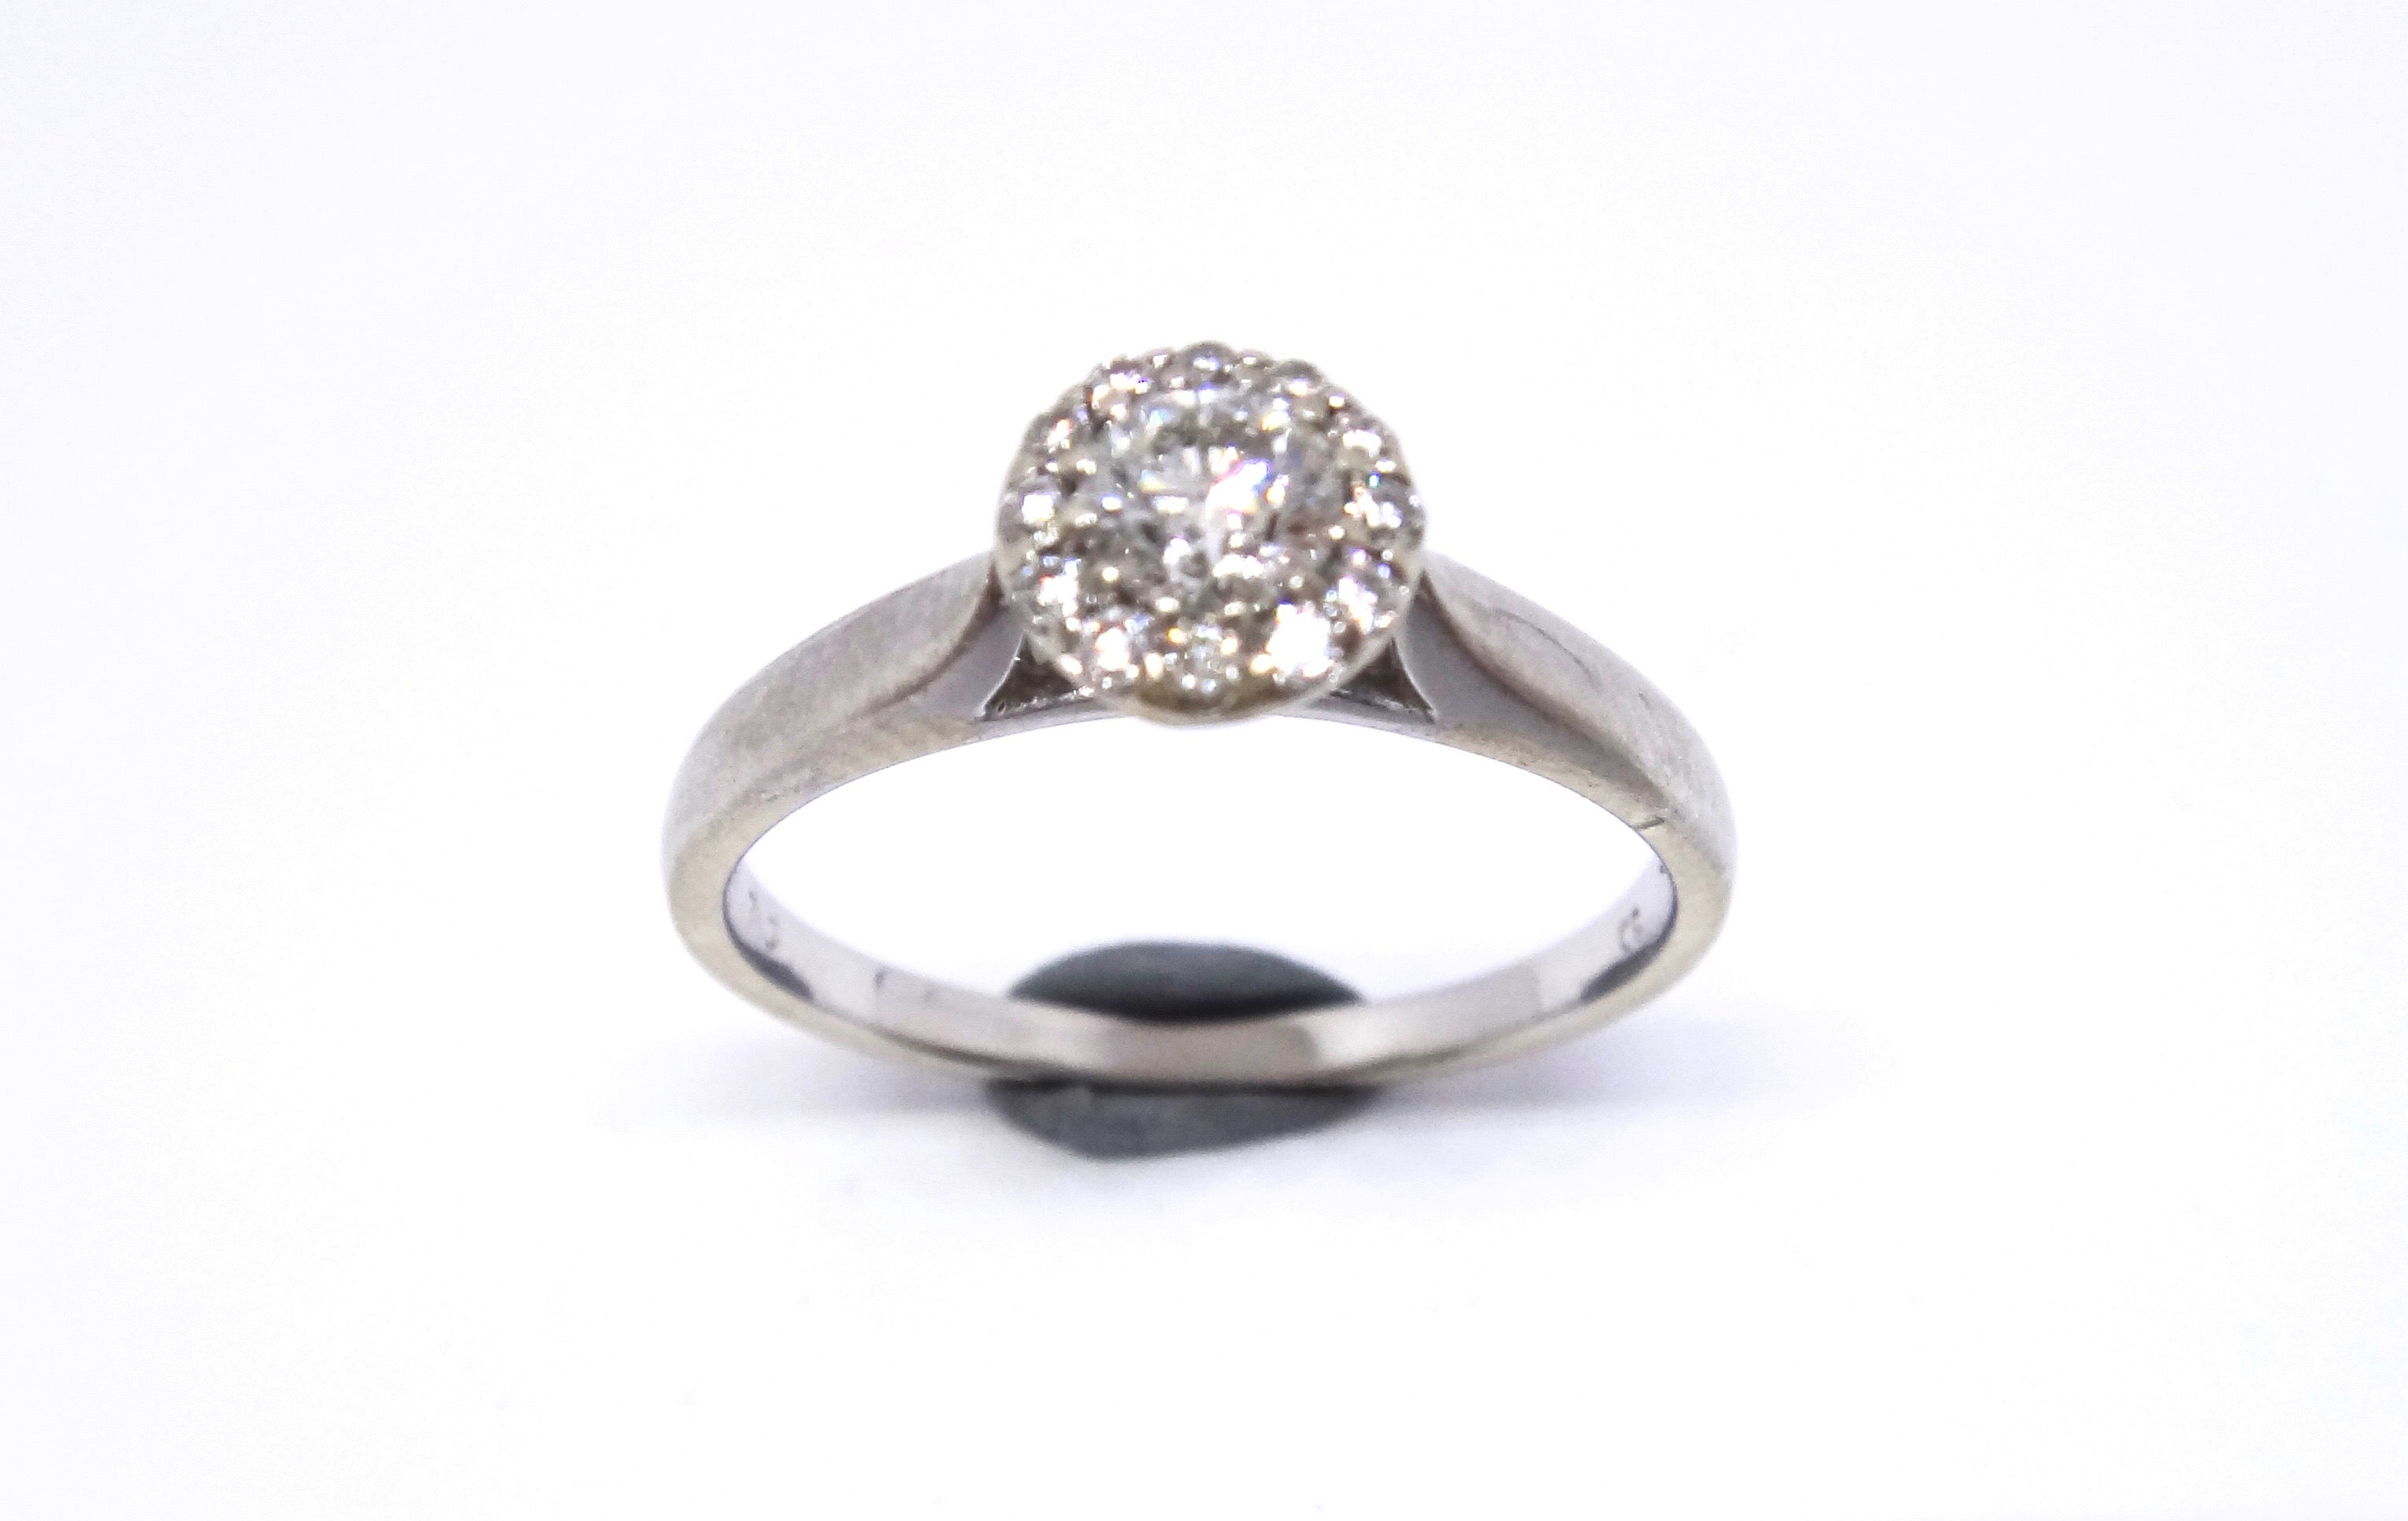 18CT White GOLD & Brilliant Cut DIAMOND Target Ring